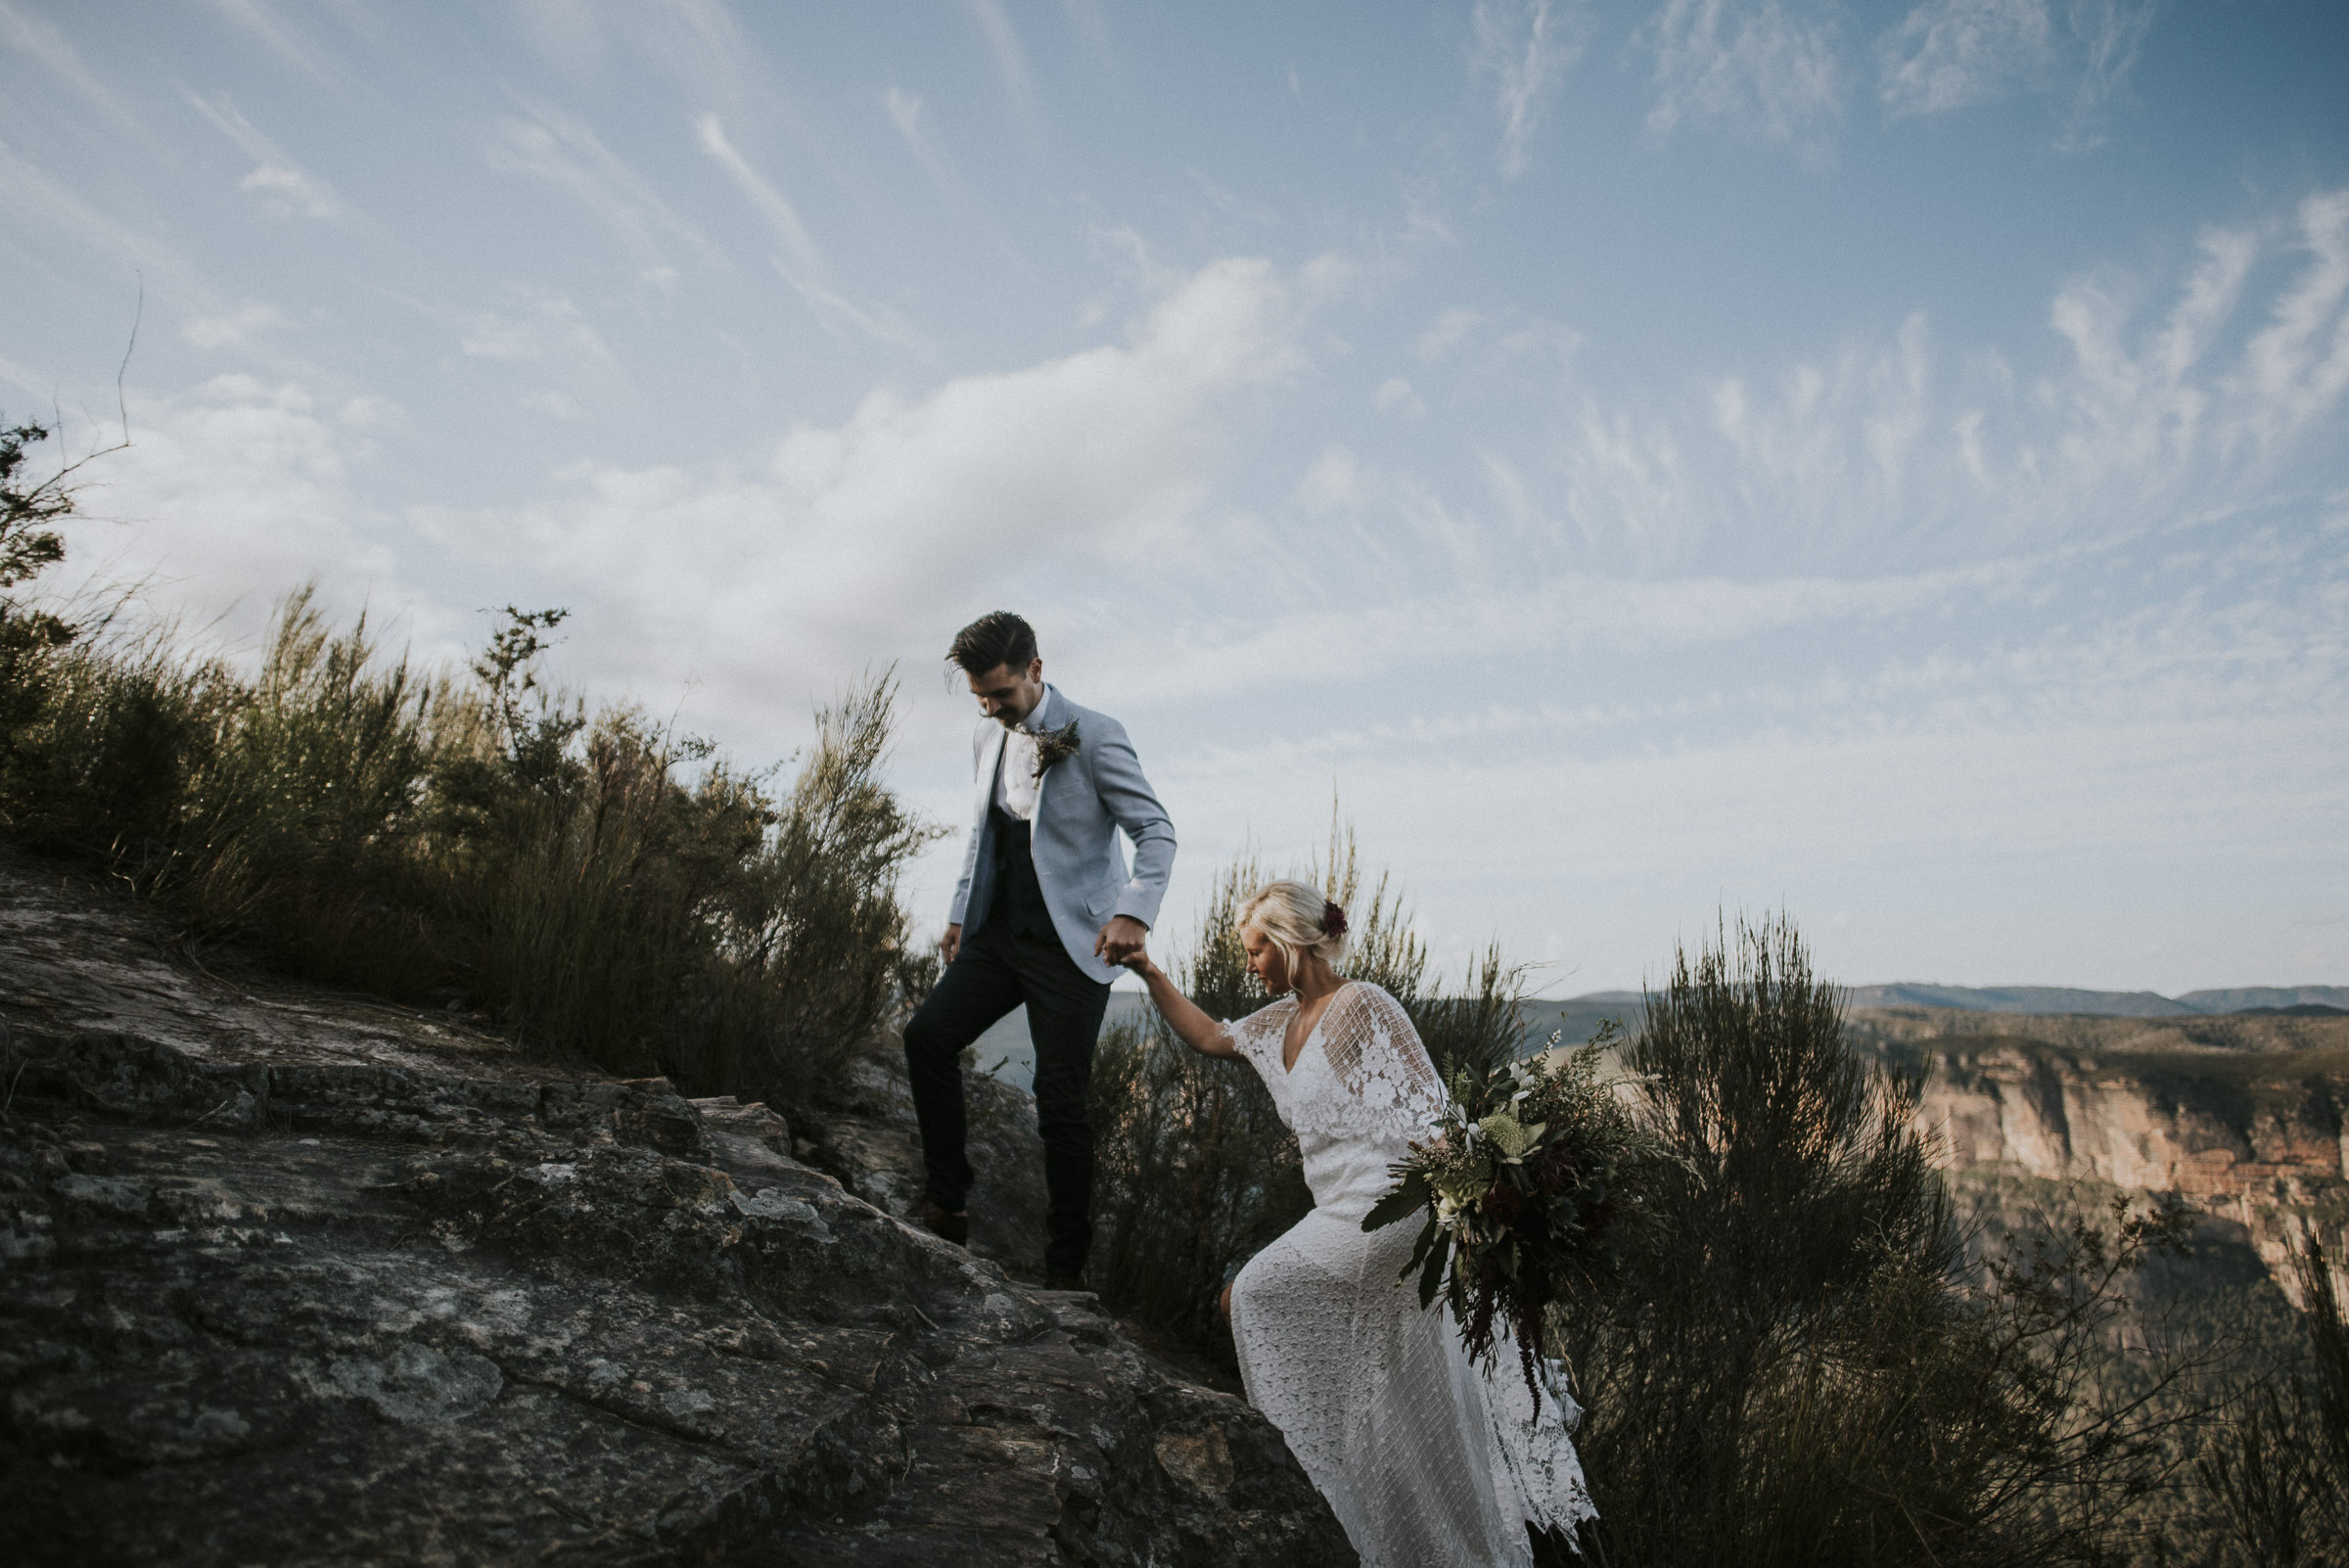 Amber_Johnny_Blue_Mountains_Elopement_Anteloping-50.jpg